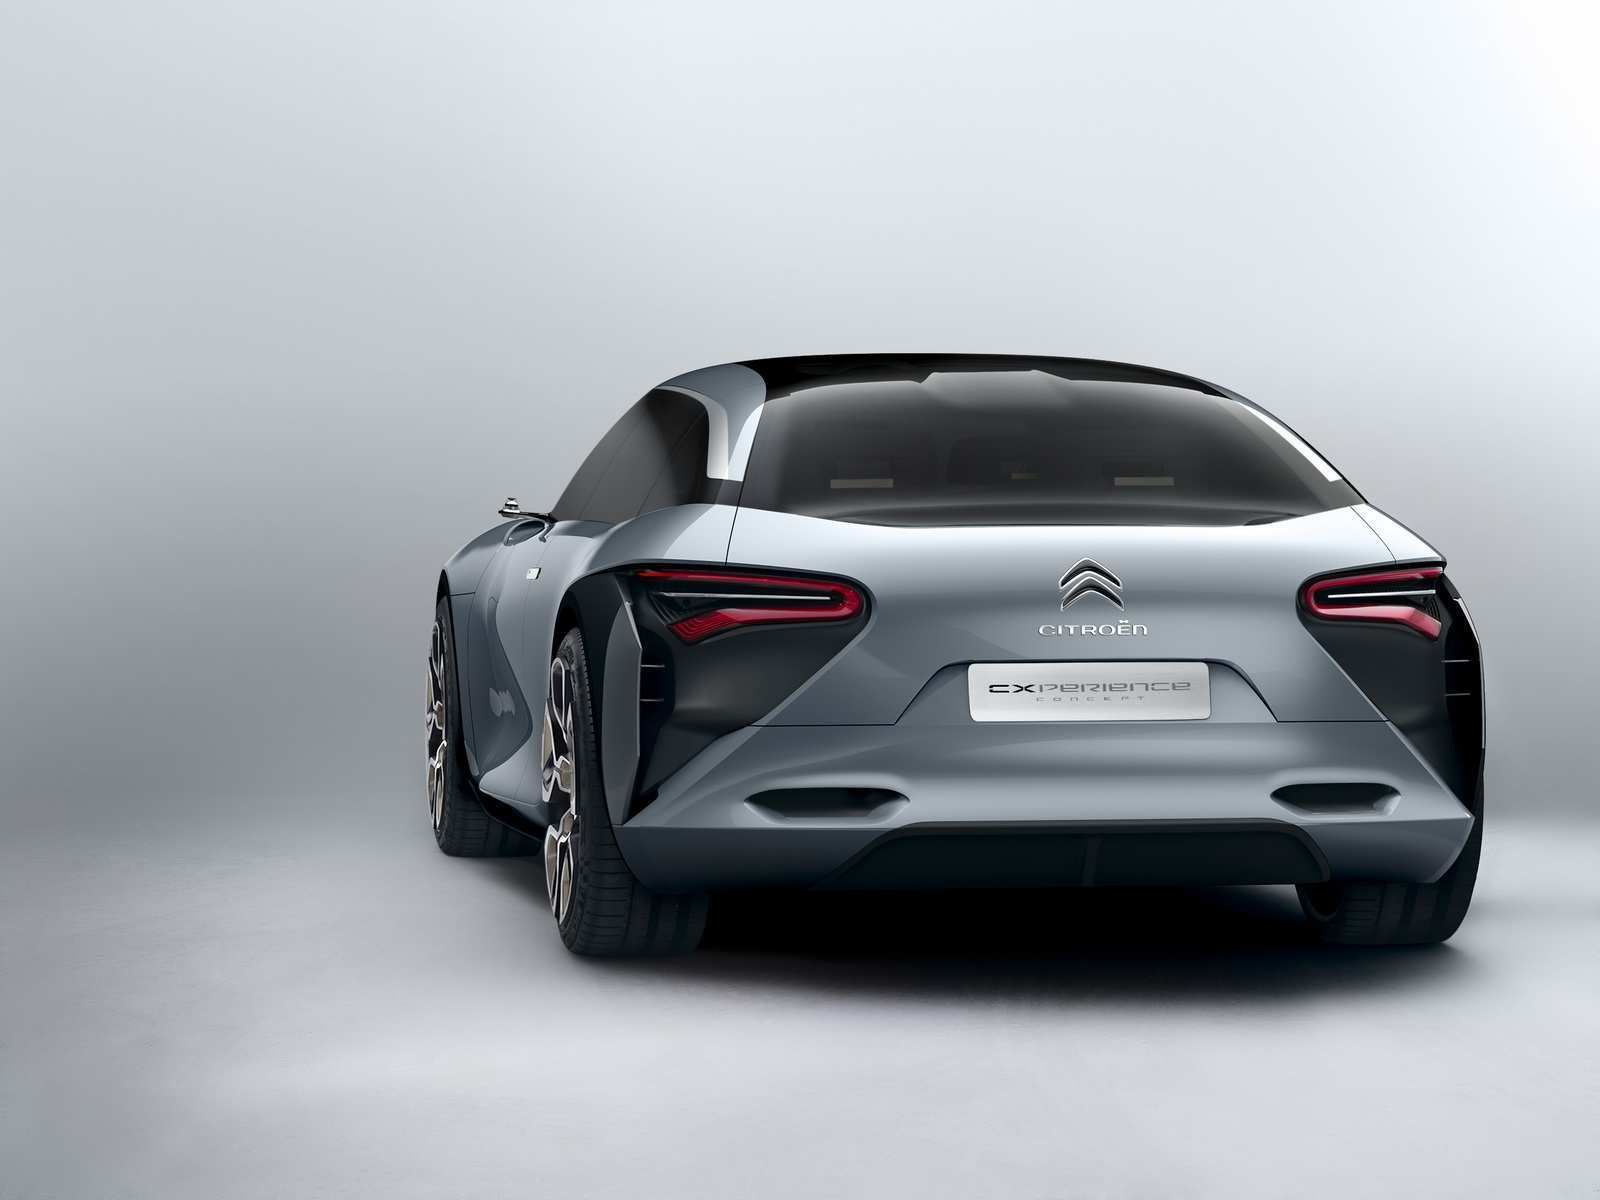 73 Best Review 2020 Citroen Redesign and Concept with 2020 Citroen